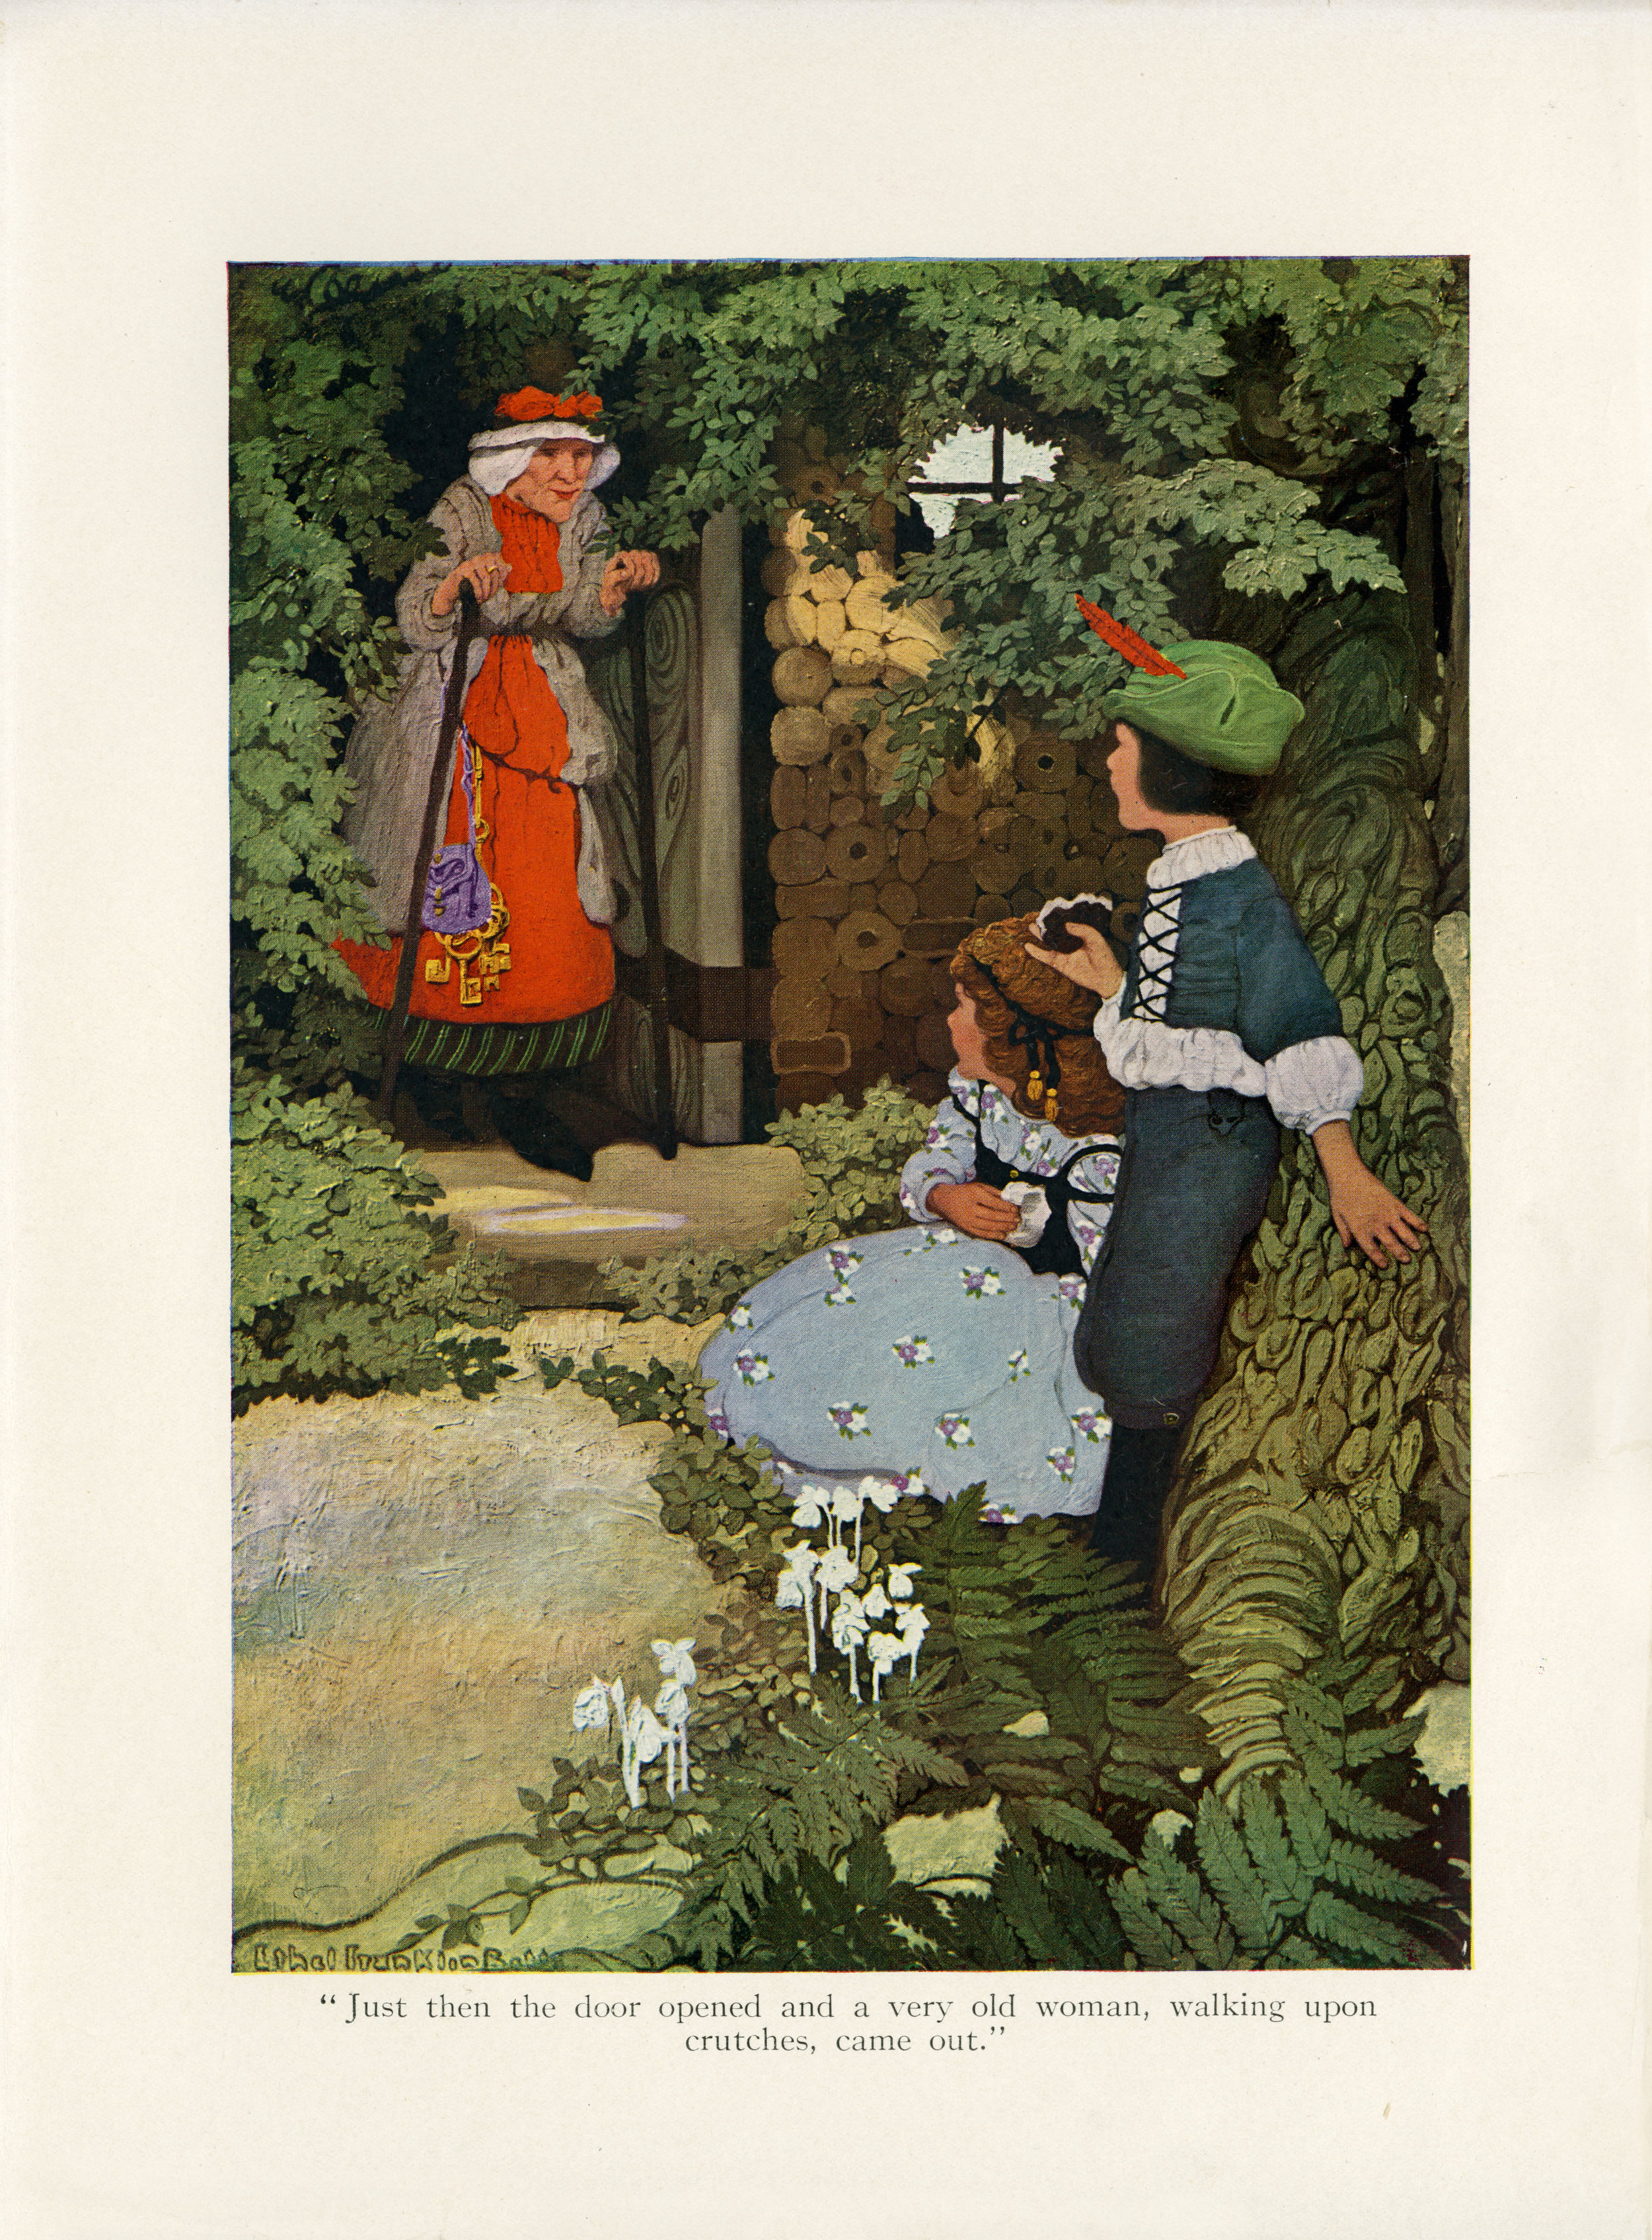 """Ethel Franklin Betts, color illustration of """"The Story of Hansel and Gretel""""from  Fairy Tales from Grimm .Edited with an intro written by Hamilton W. Mabie. Published in 1909 by Edw. Stern & Co. Inc."""